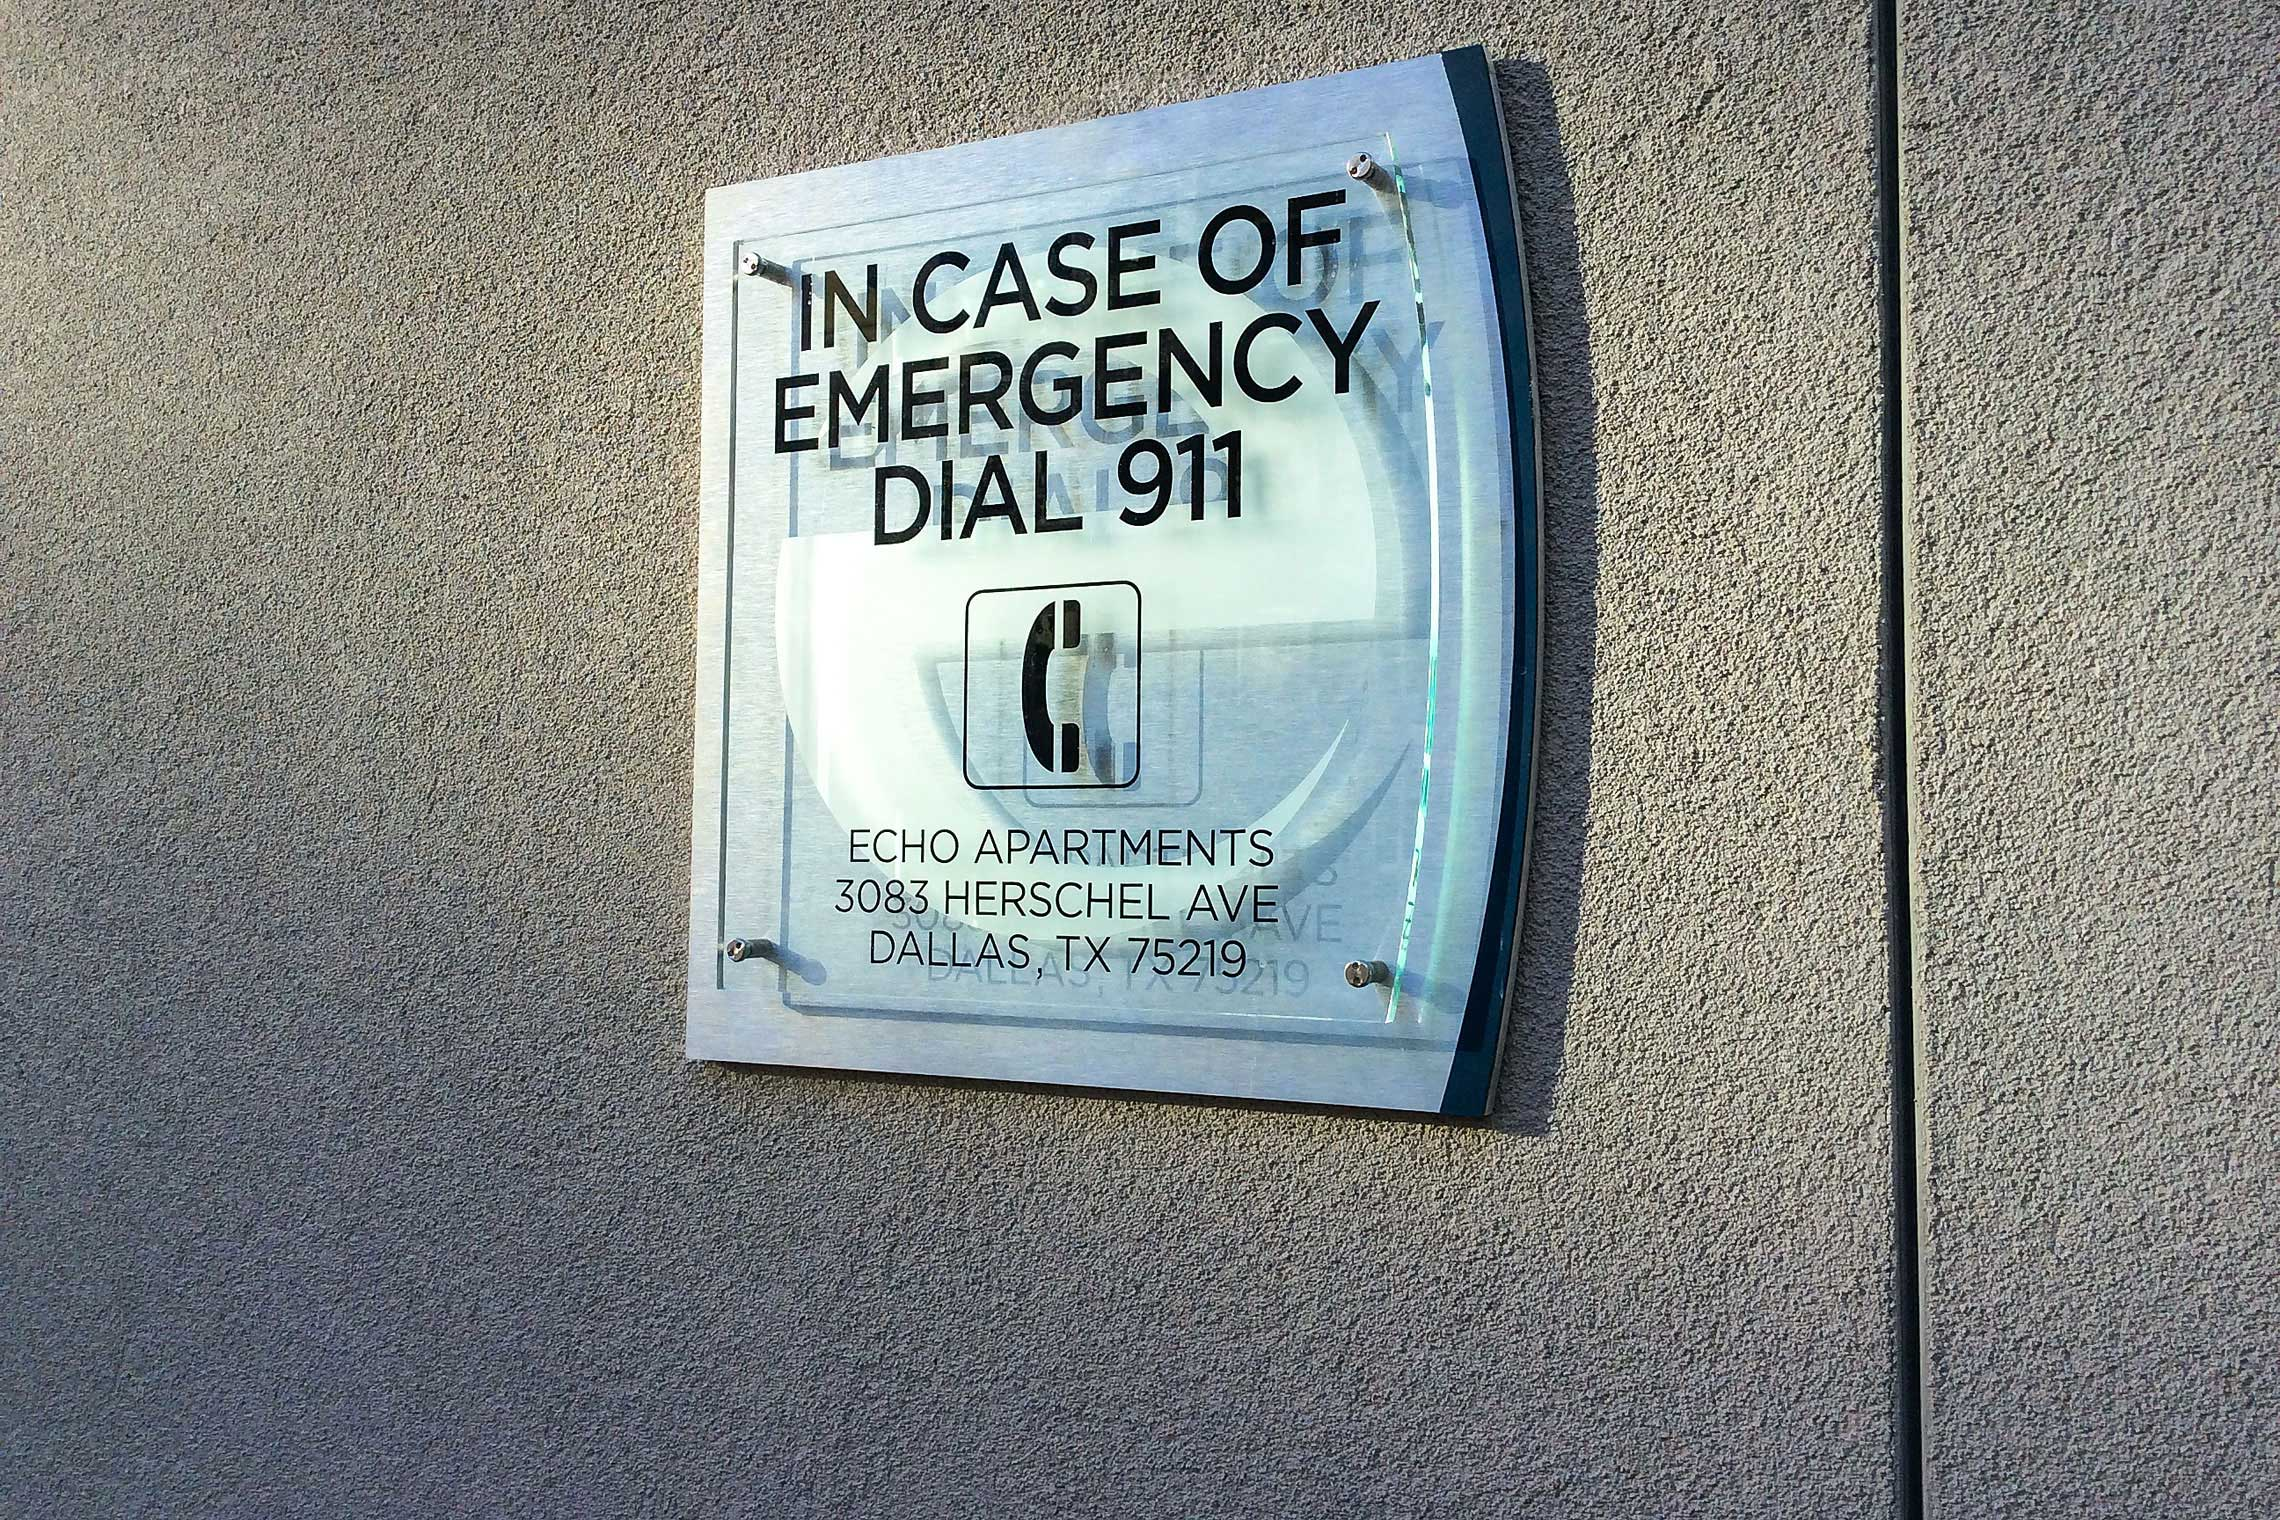 Echo City Apartments In Case of Emergency Dial 911 Sign by Pool